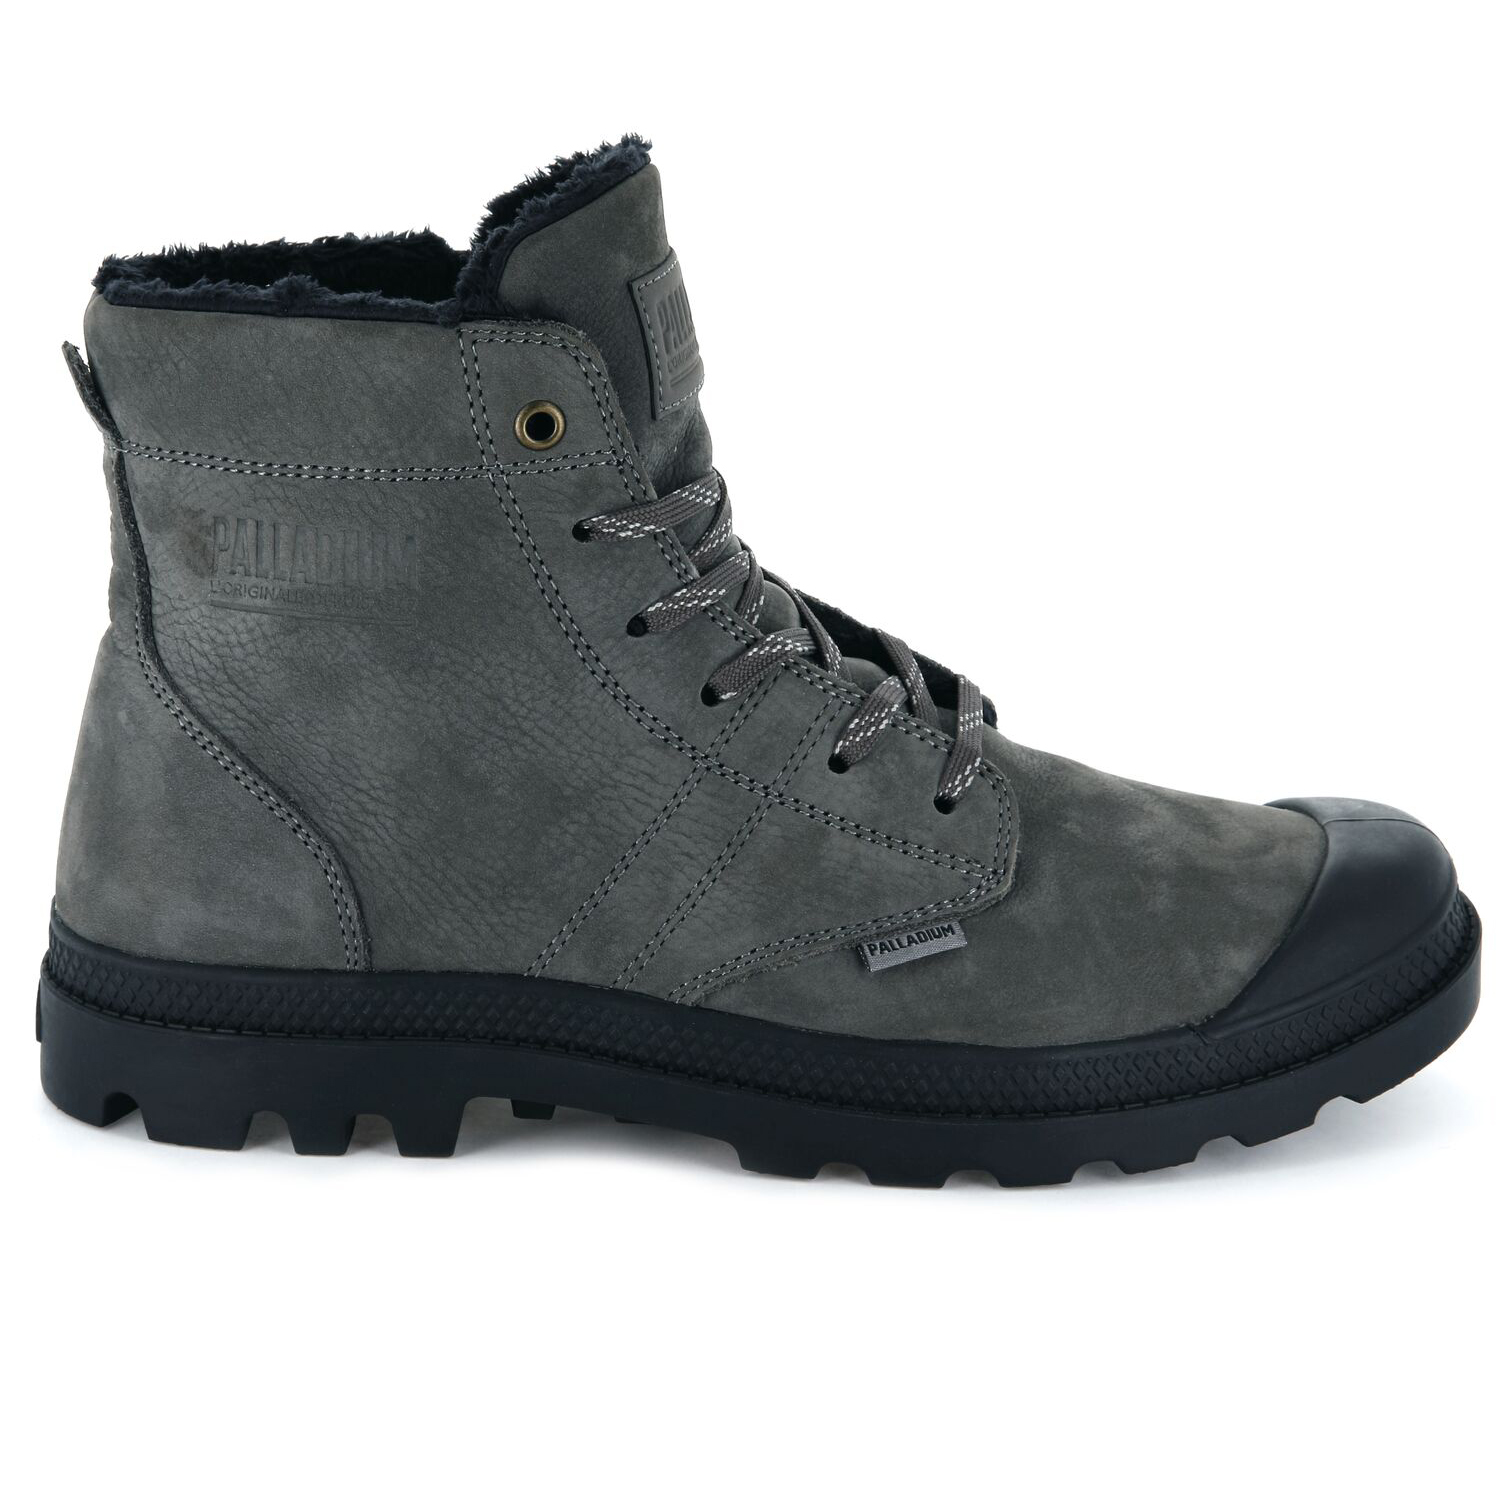 Palladium-Mens-Pallabrousse-Leather-Hi-Top-Boots-Walking-Workwear-Lace-Up-Shoes thumbnail 3